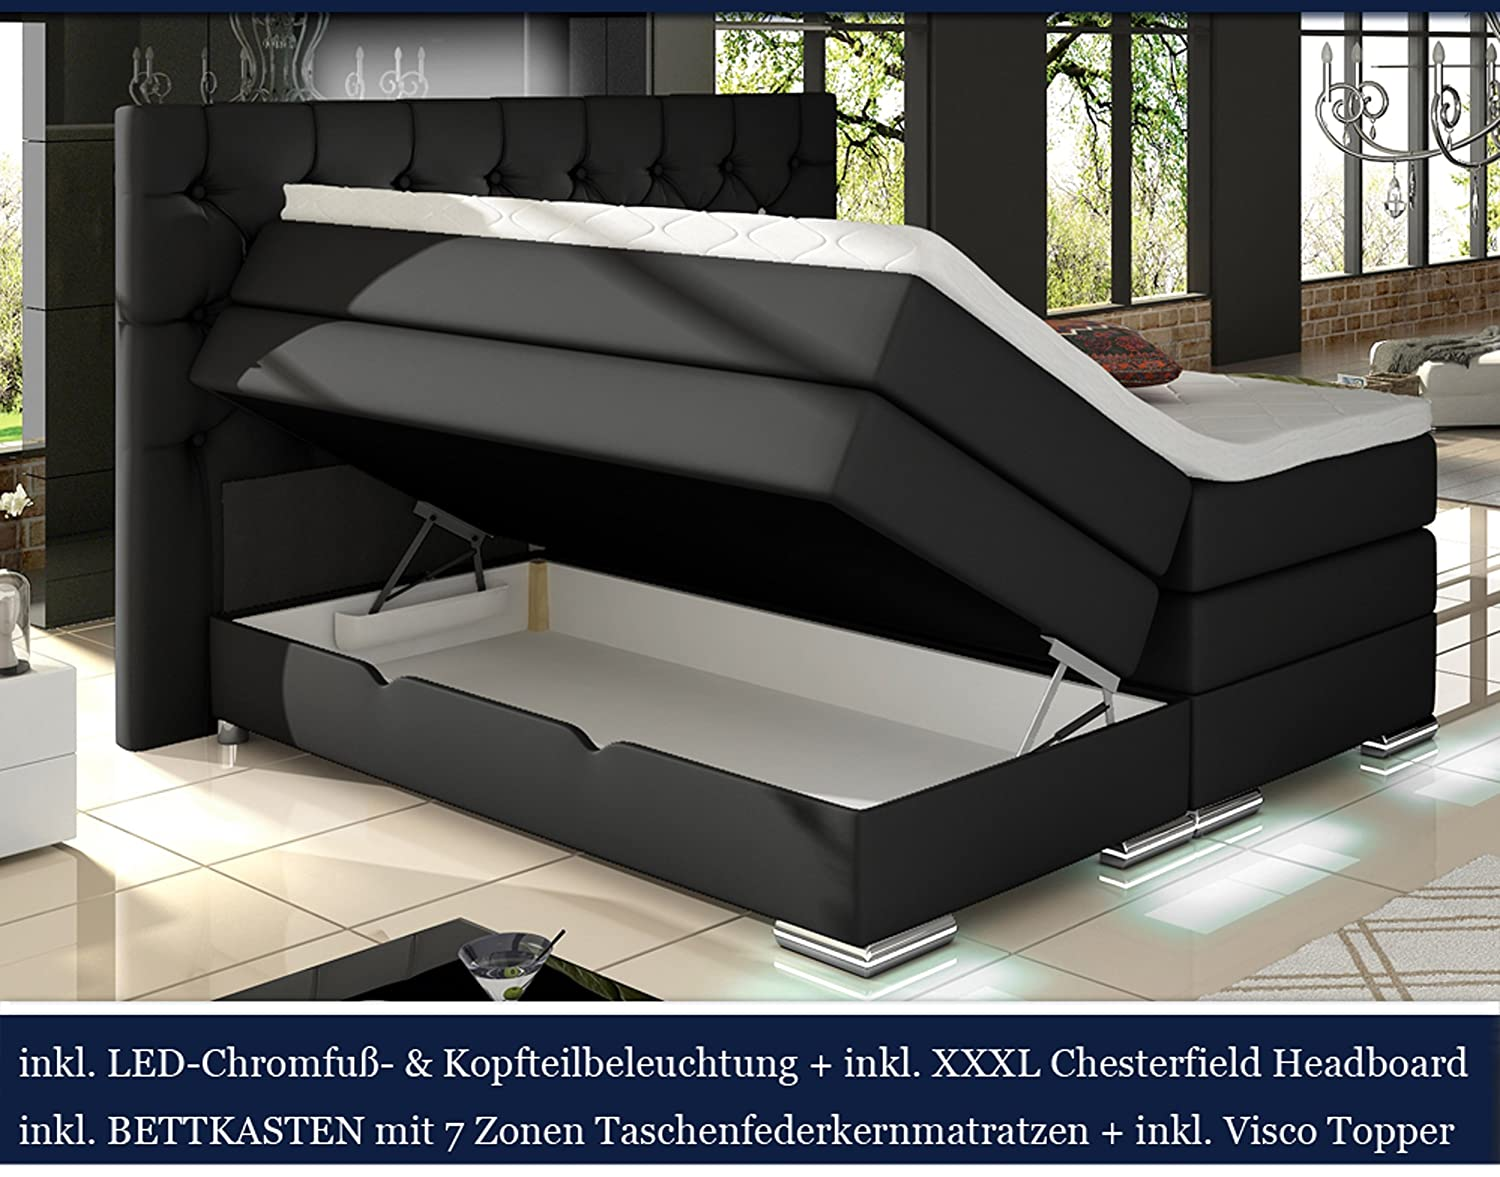 xxxl mailand boxspringbett mit bettkasten designer boxspring bett chesterfield led schwarz. Black Bedroom Furniture Sets. Home Design Ideas